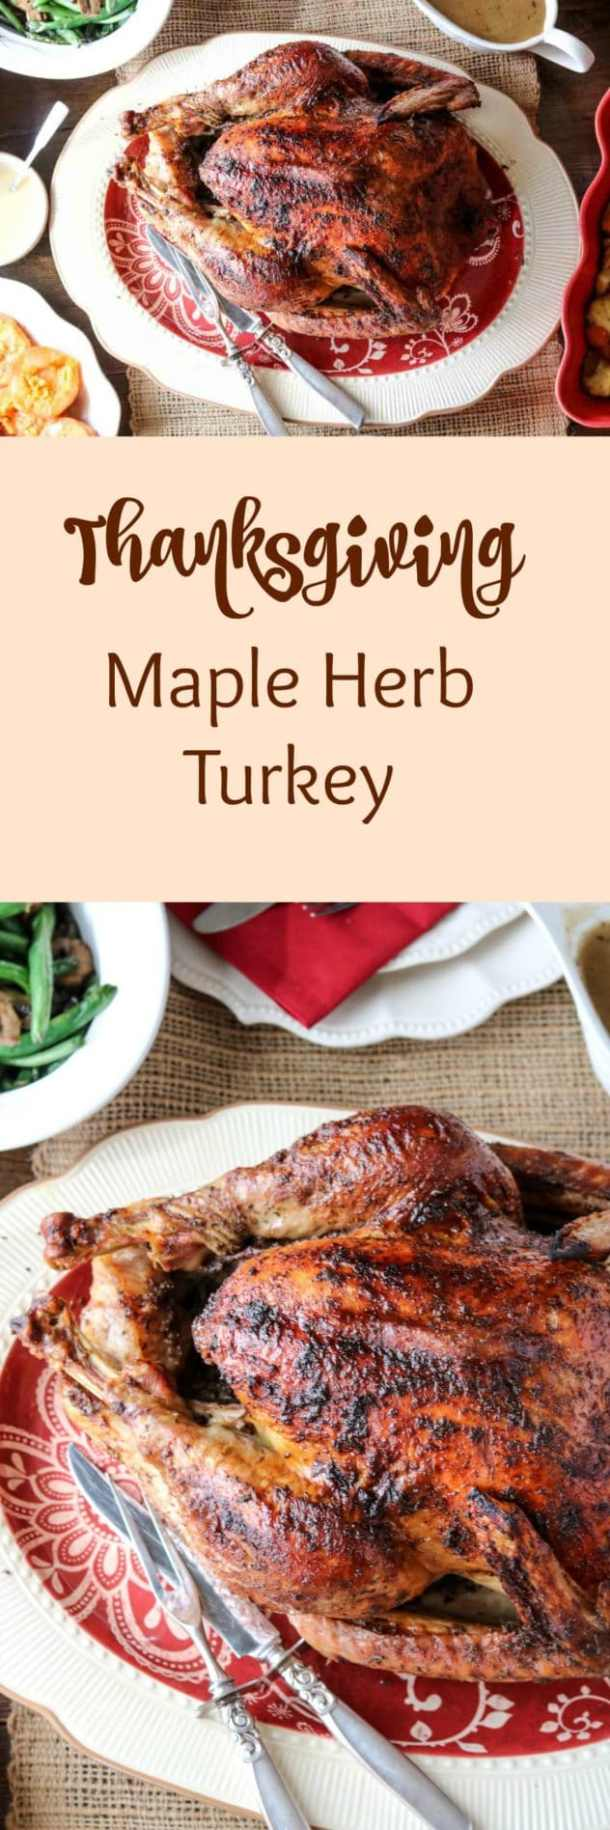 Thanksgiving Maple Herb Turkey